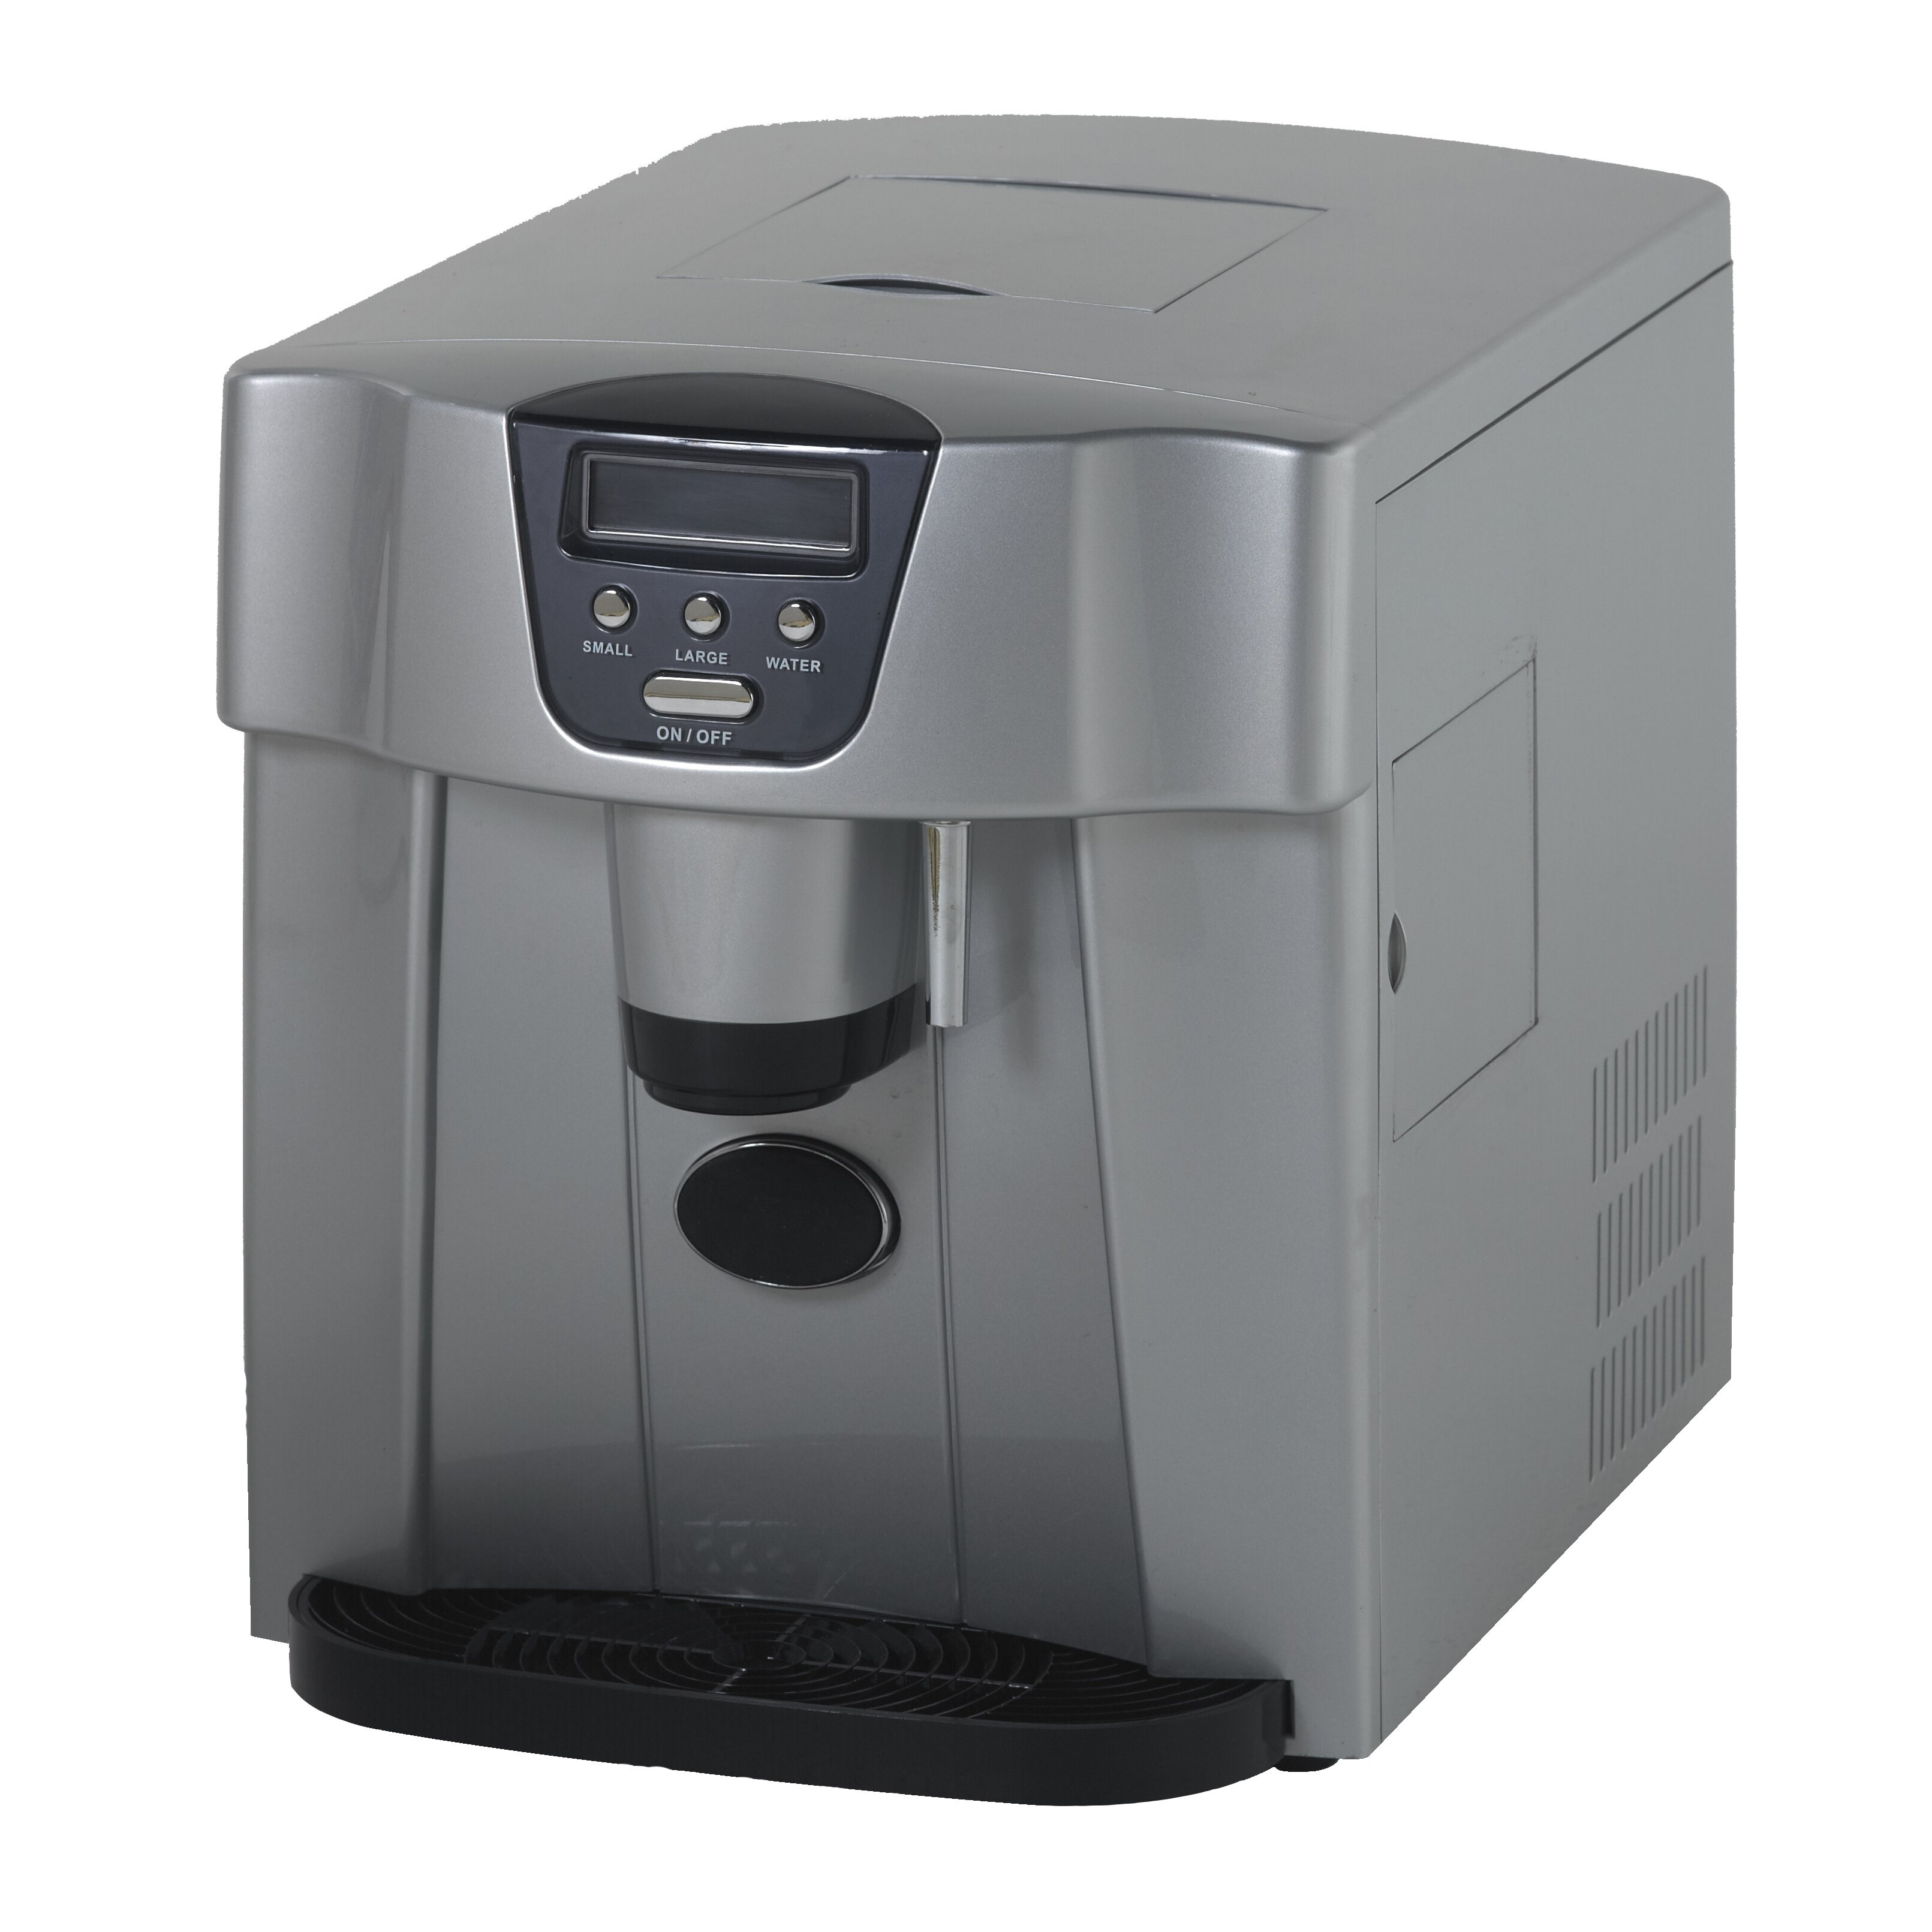 Avanti Countertop Ice Maker Wimd332pcis : ... ... Freestanding Ice Makers Avanti Part #: WIMD332PCIS SKU: AVA1419